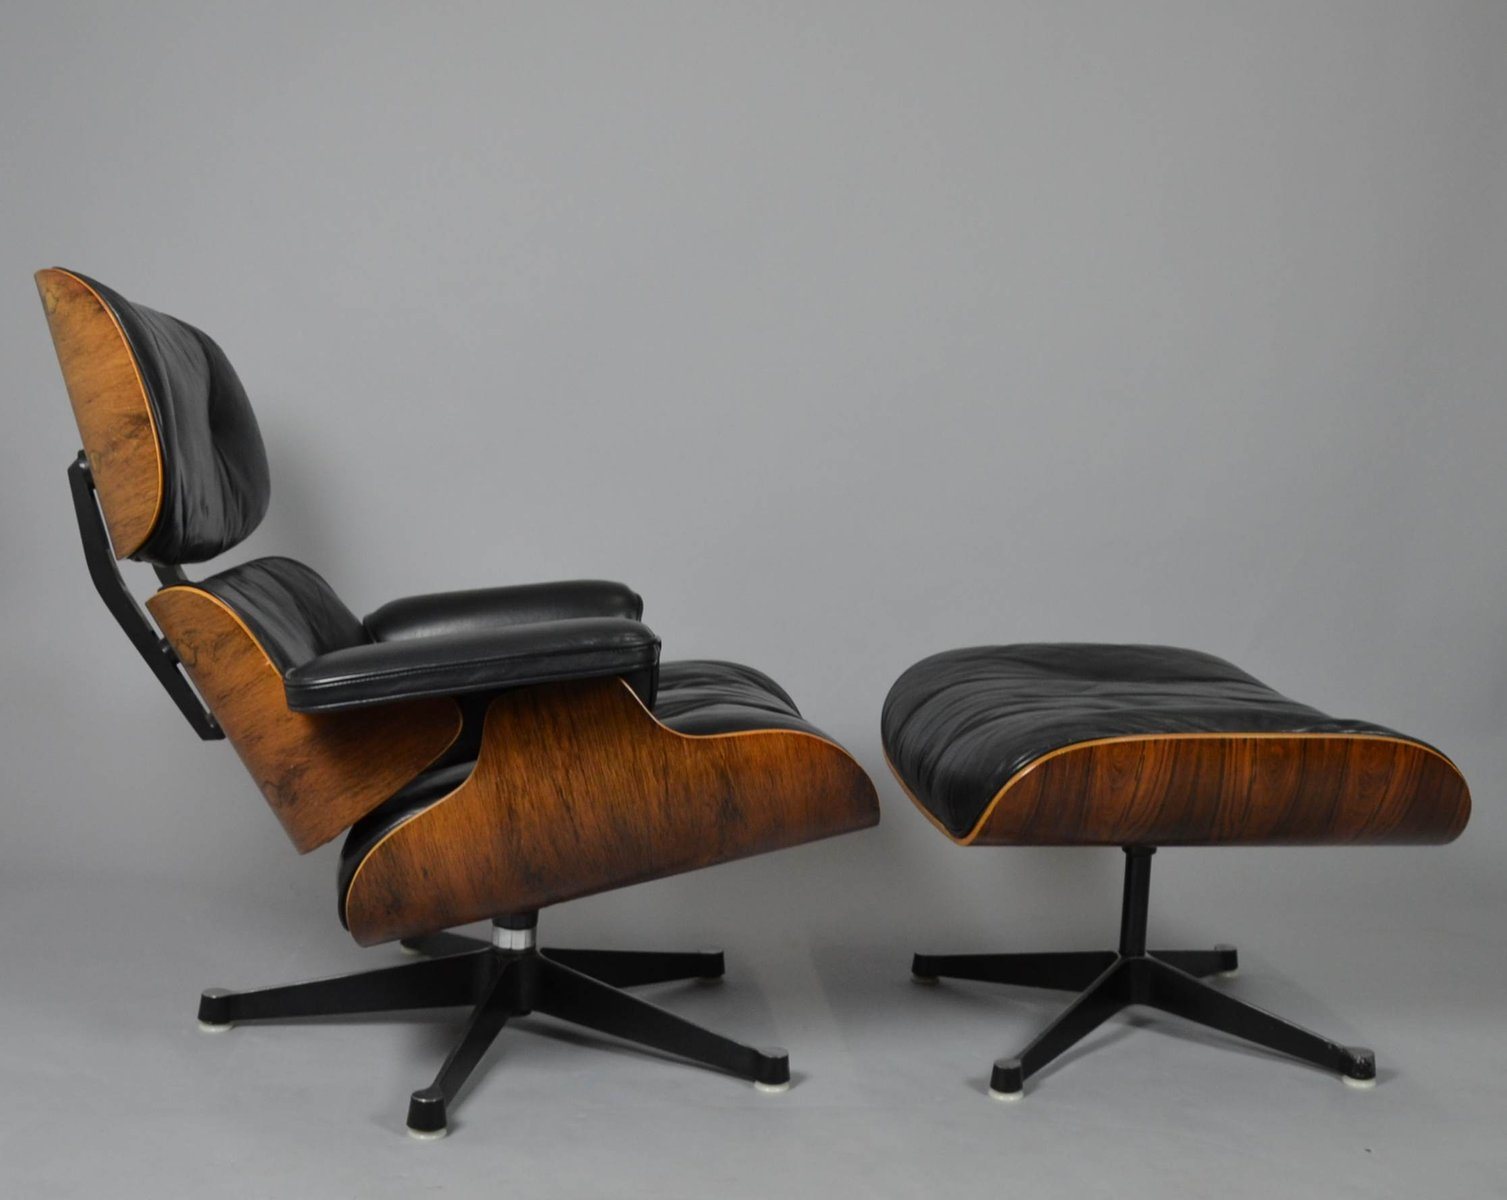 sessel ottomane von charles ray eames f r vitra 1960er bei pamono kaufen. Black Bedroom Furniture Sets. Home Design Ideas